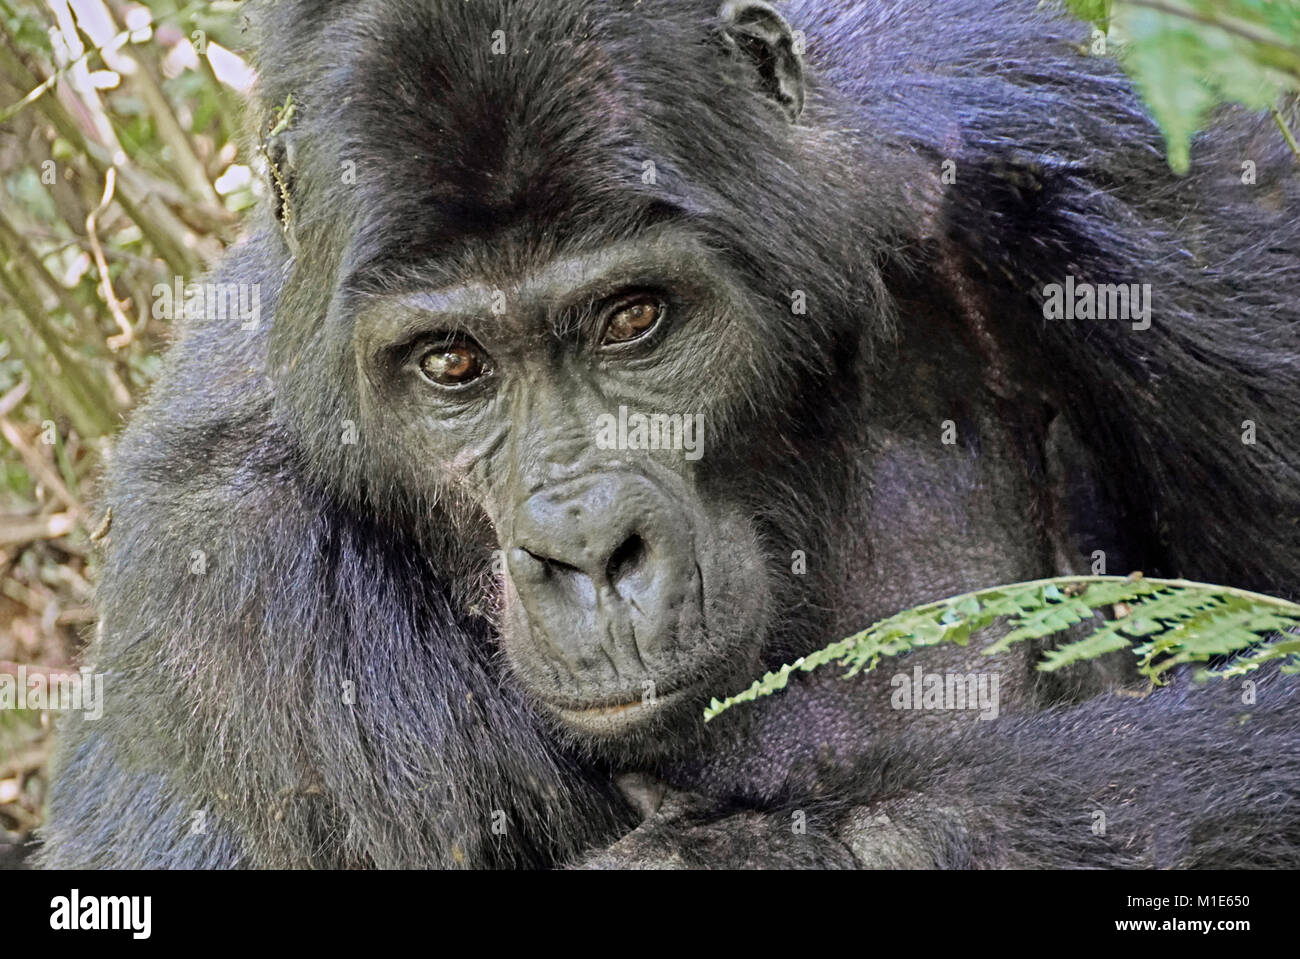 Silverback mountain gorilla in Bwindi Impenerable National Park, Uganda. - Stock Image